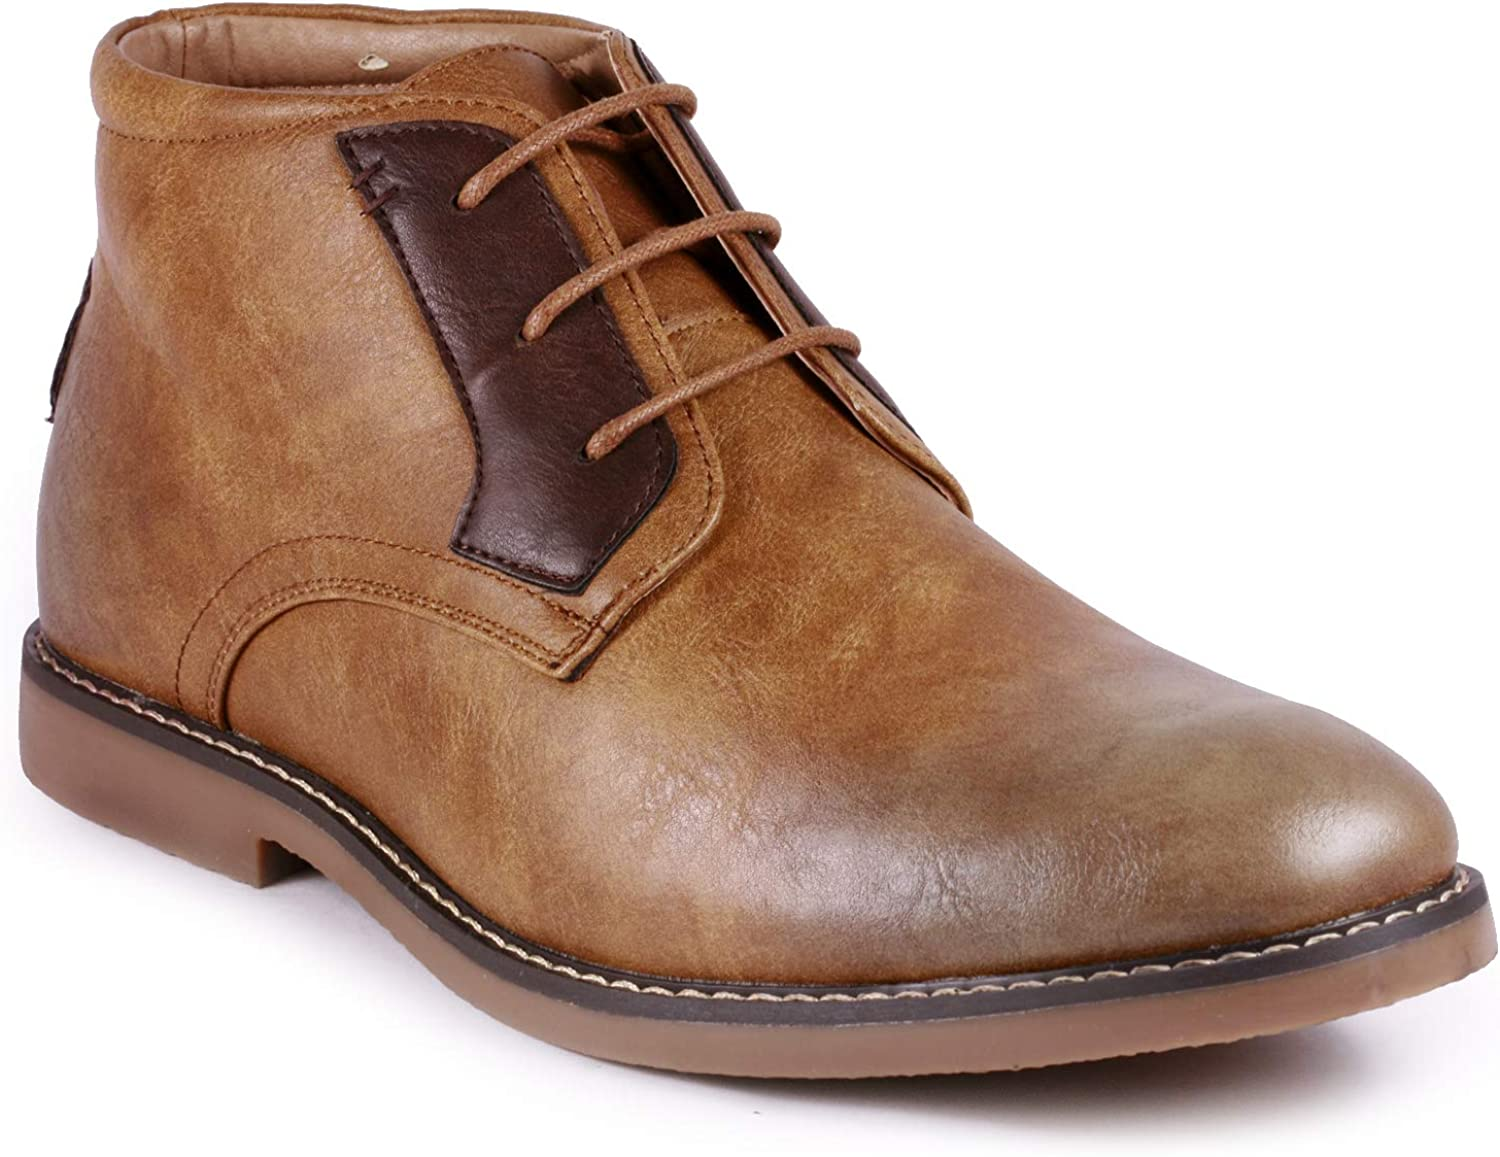 Metrocharm MC138 Men's Lace up Casual Fashion Ankle Chukka Boots